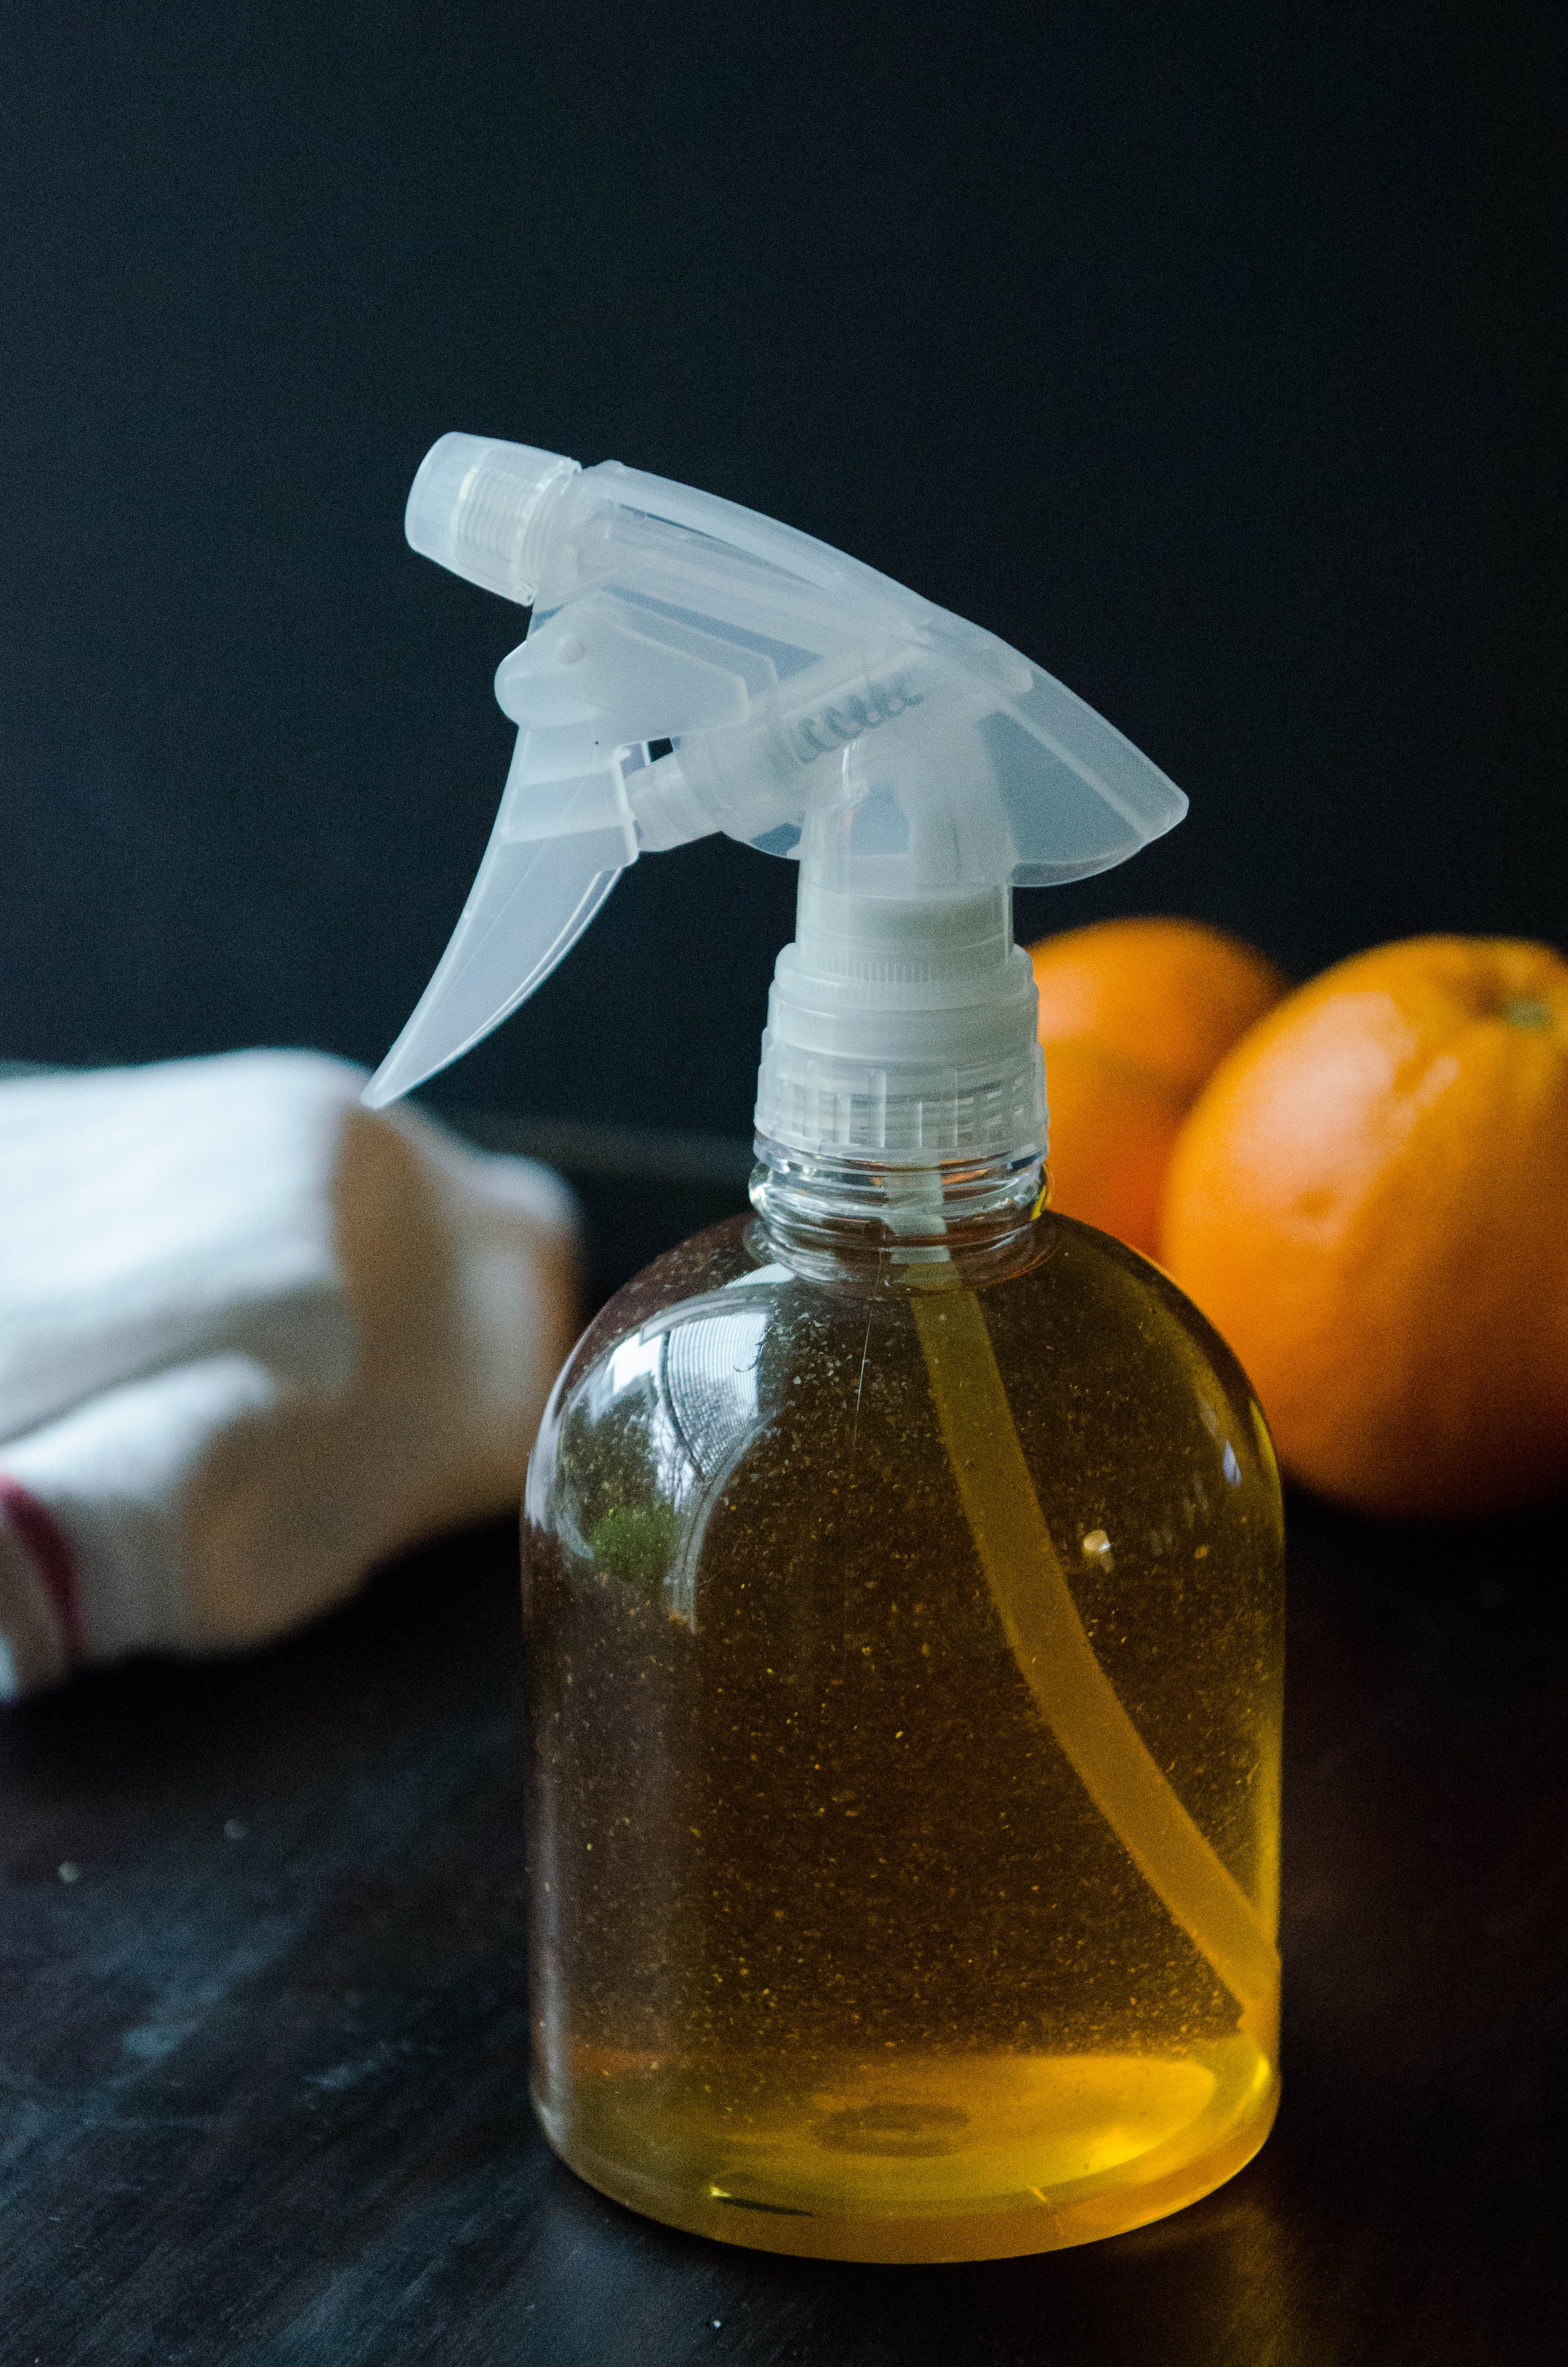 How To Make an All-Purpose Kitchen Cleaner Using Citrus Peels | Kitchn